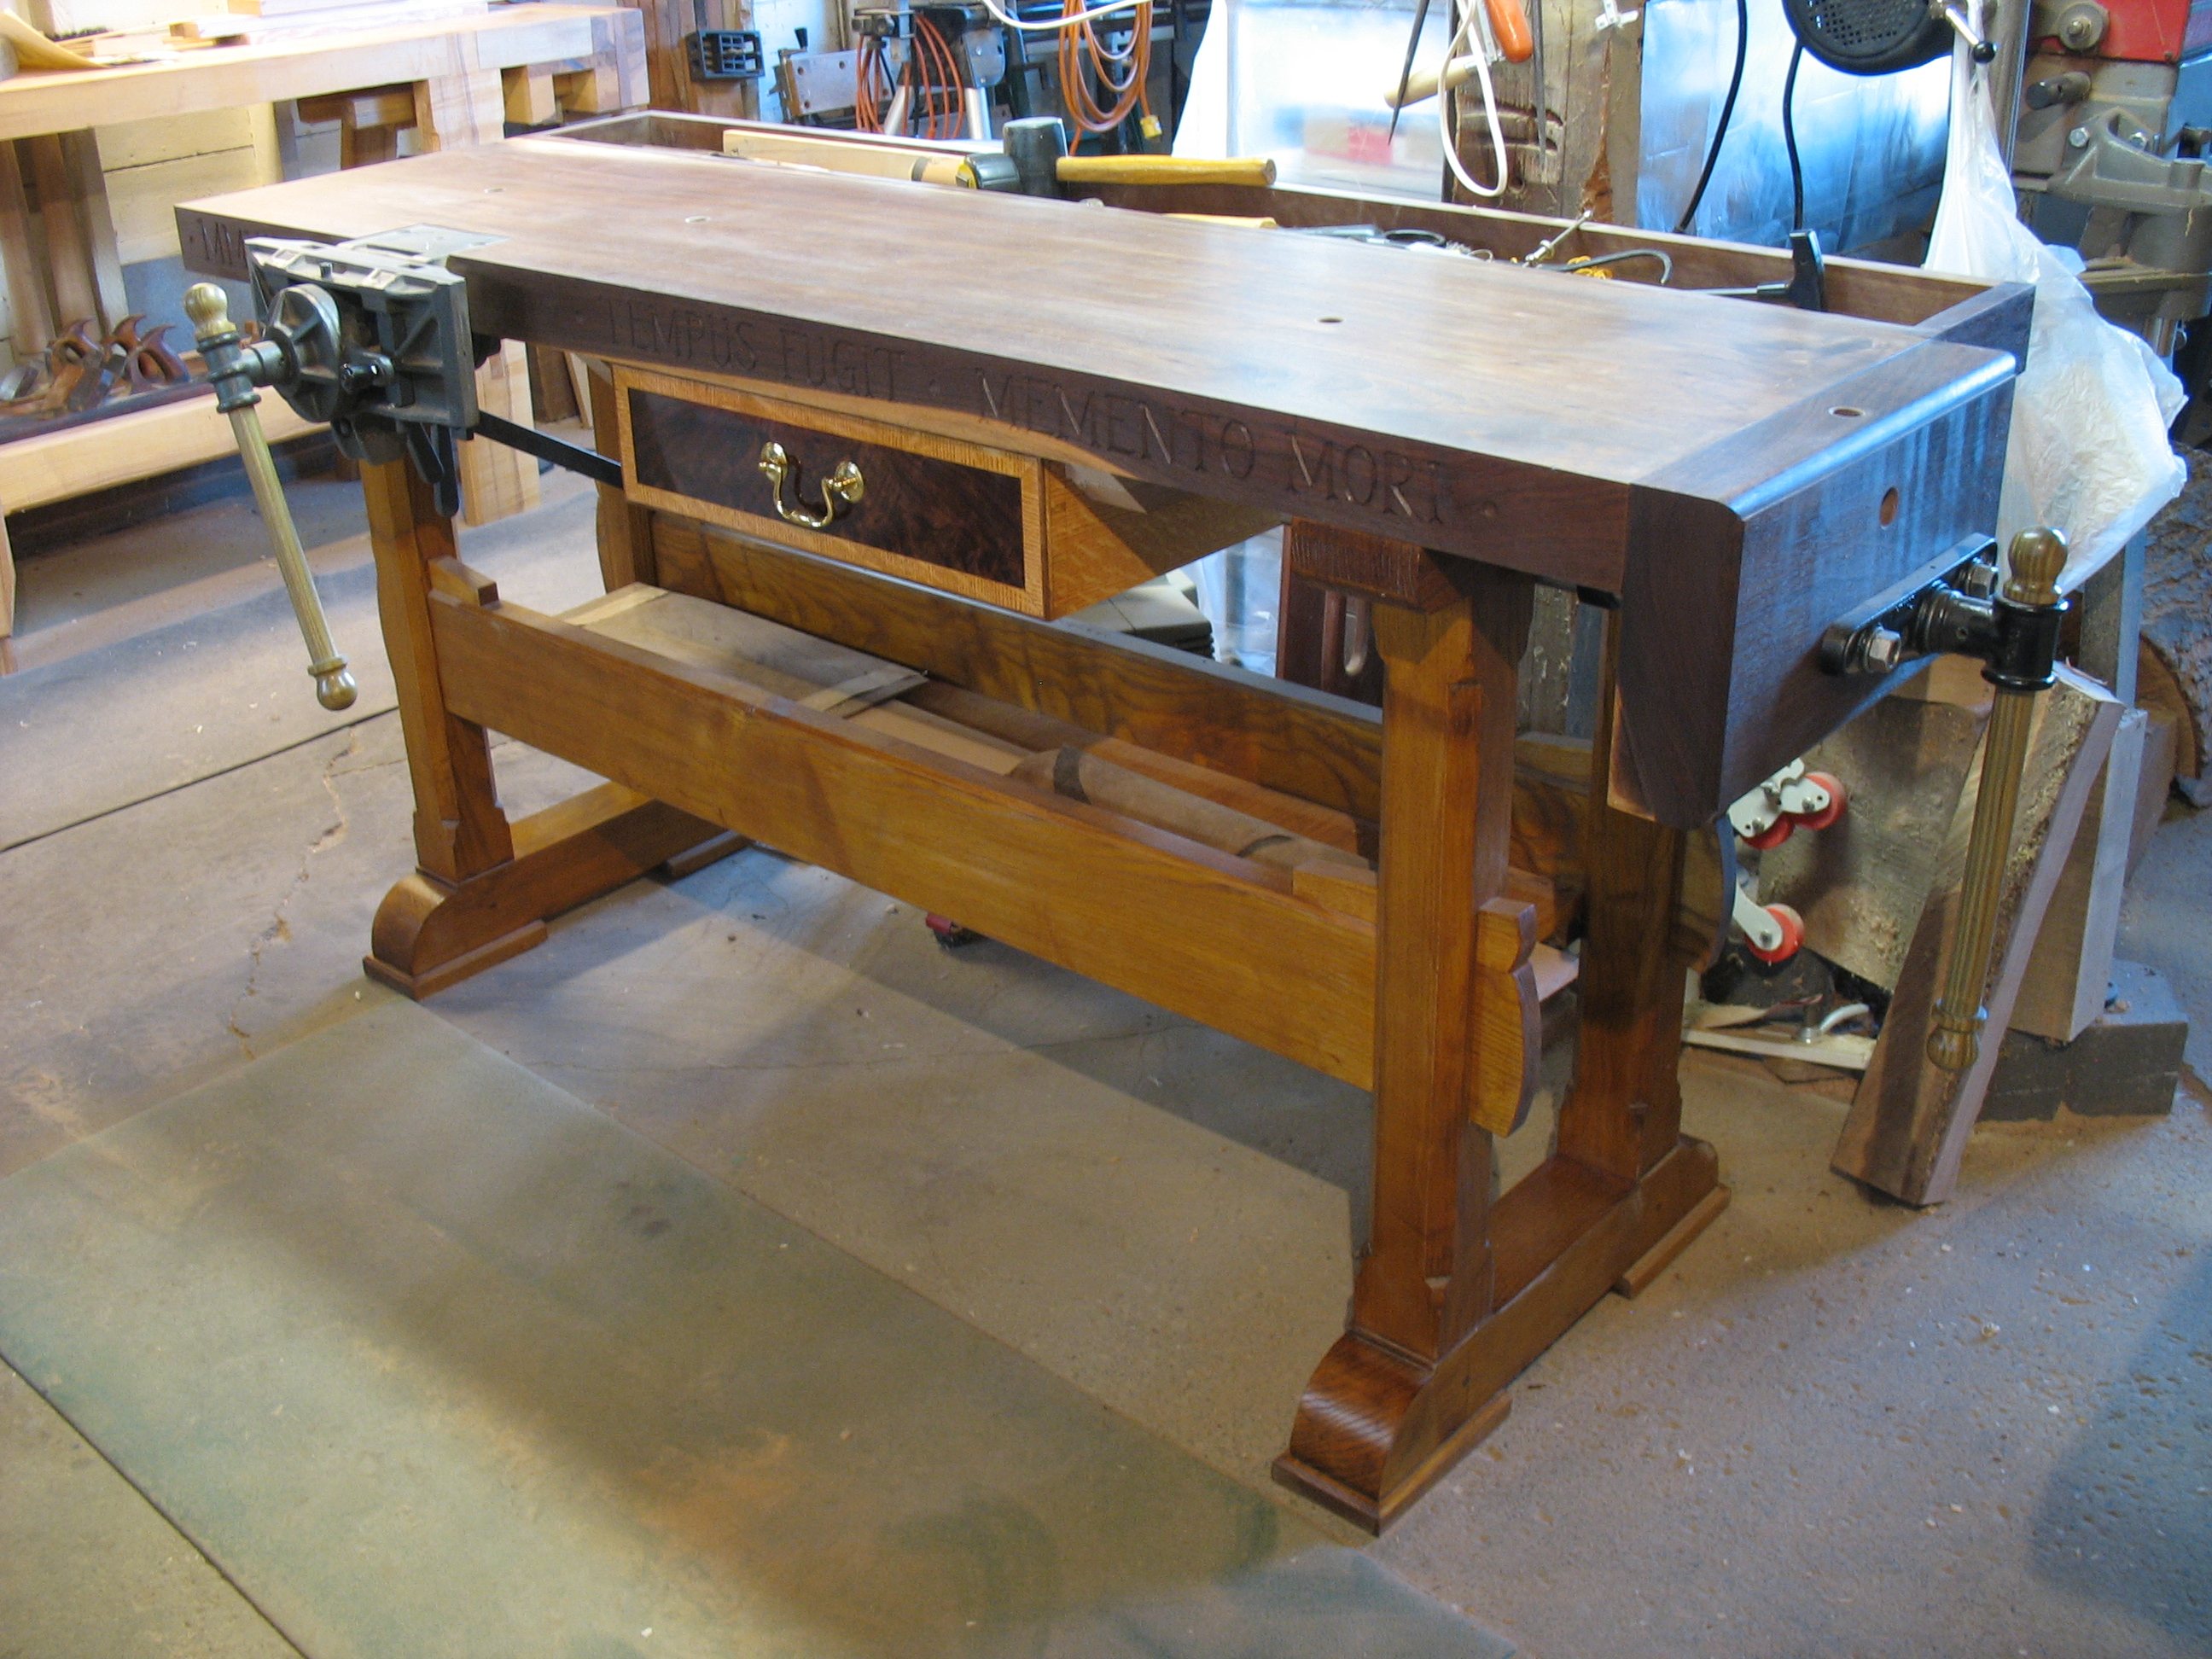 Strange A Single Plank A Wide And Steady Stance A Woodworkers Dailytribune Chair Design For Home Dailytribuneorg